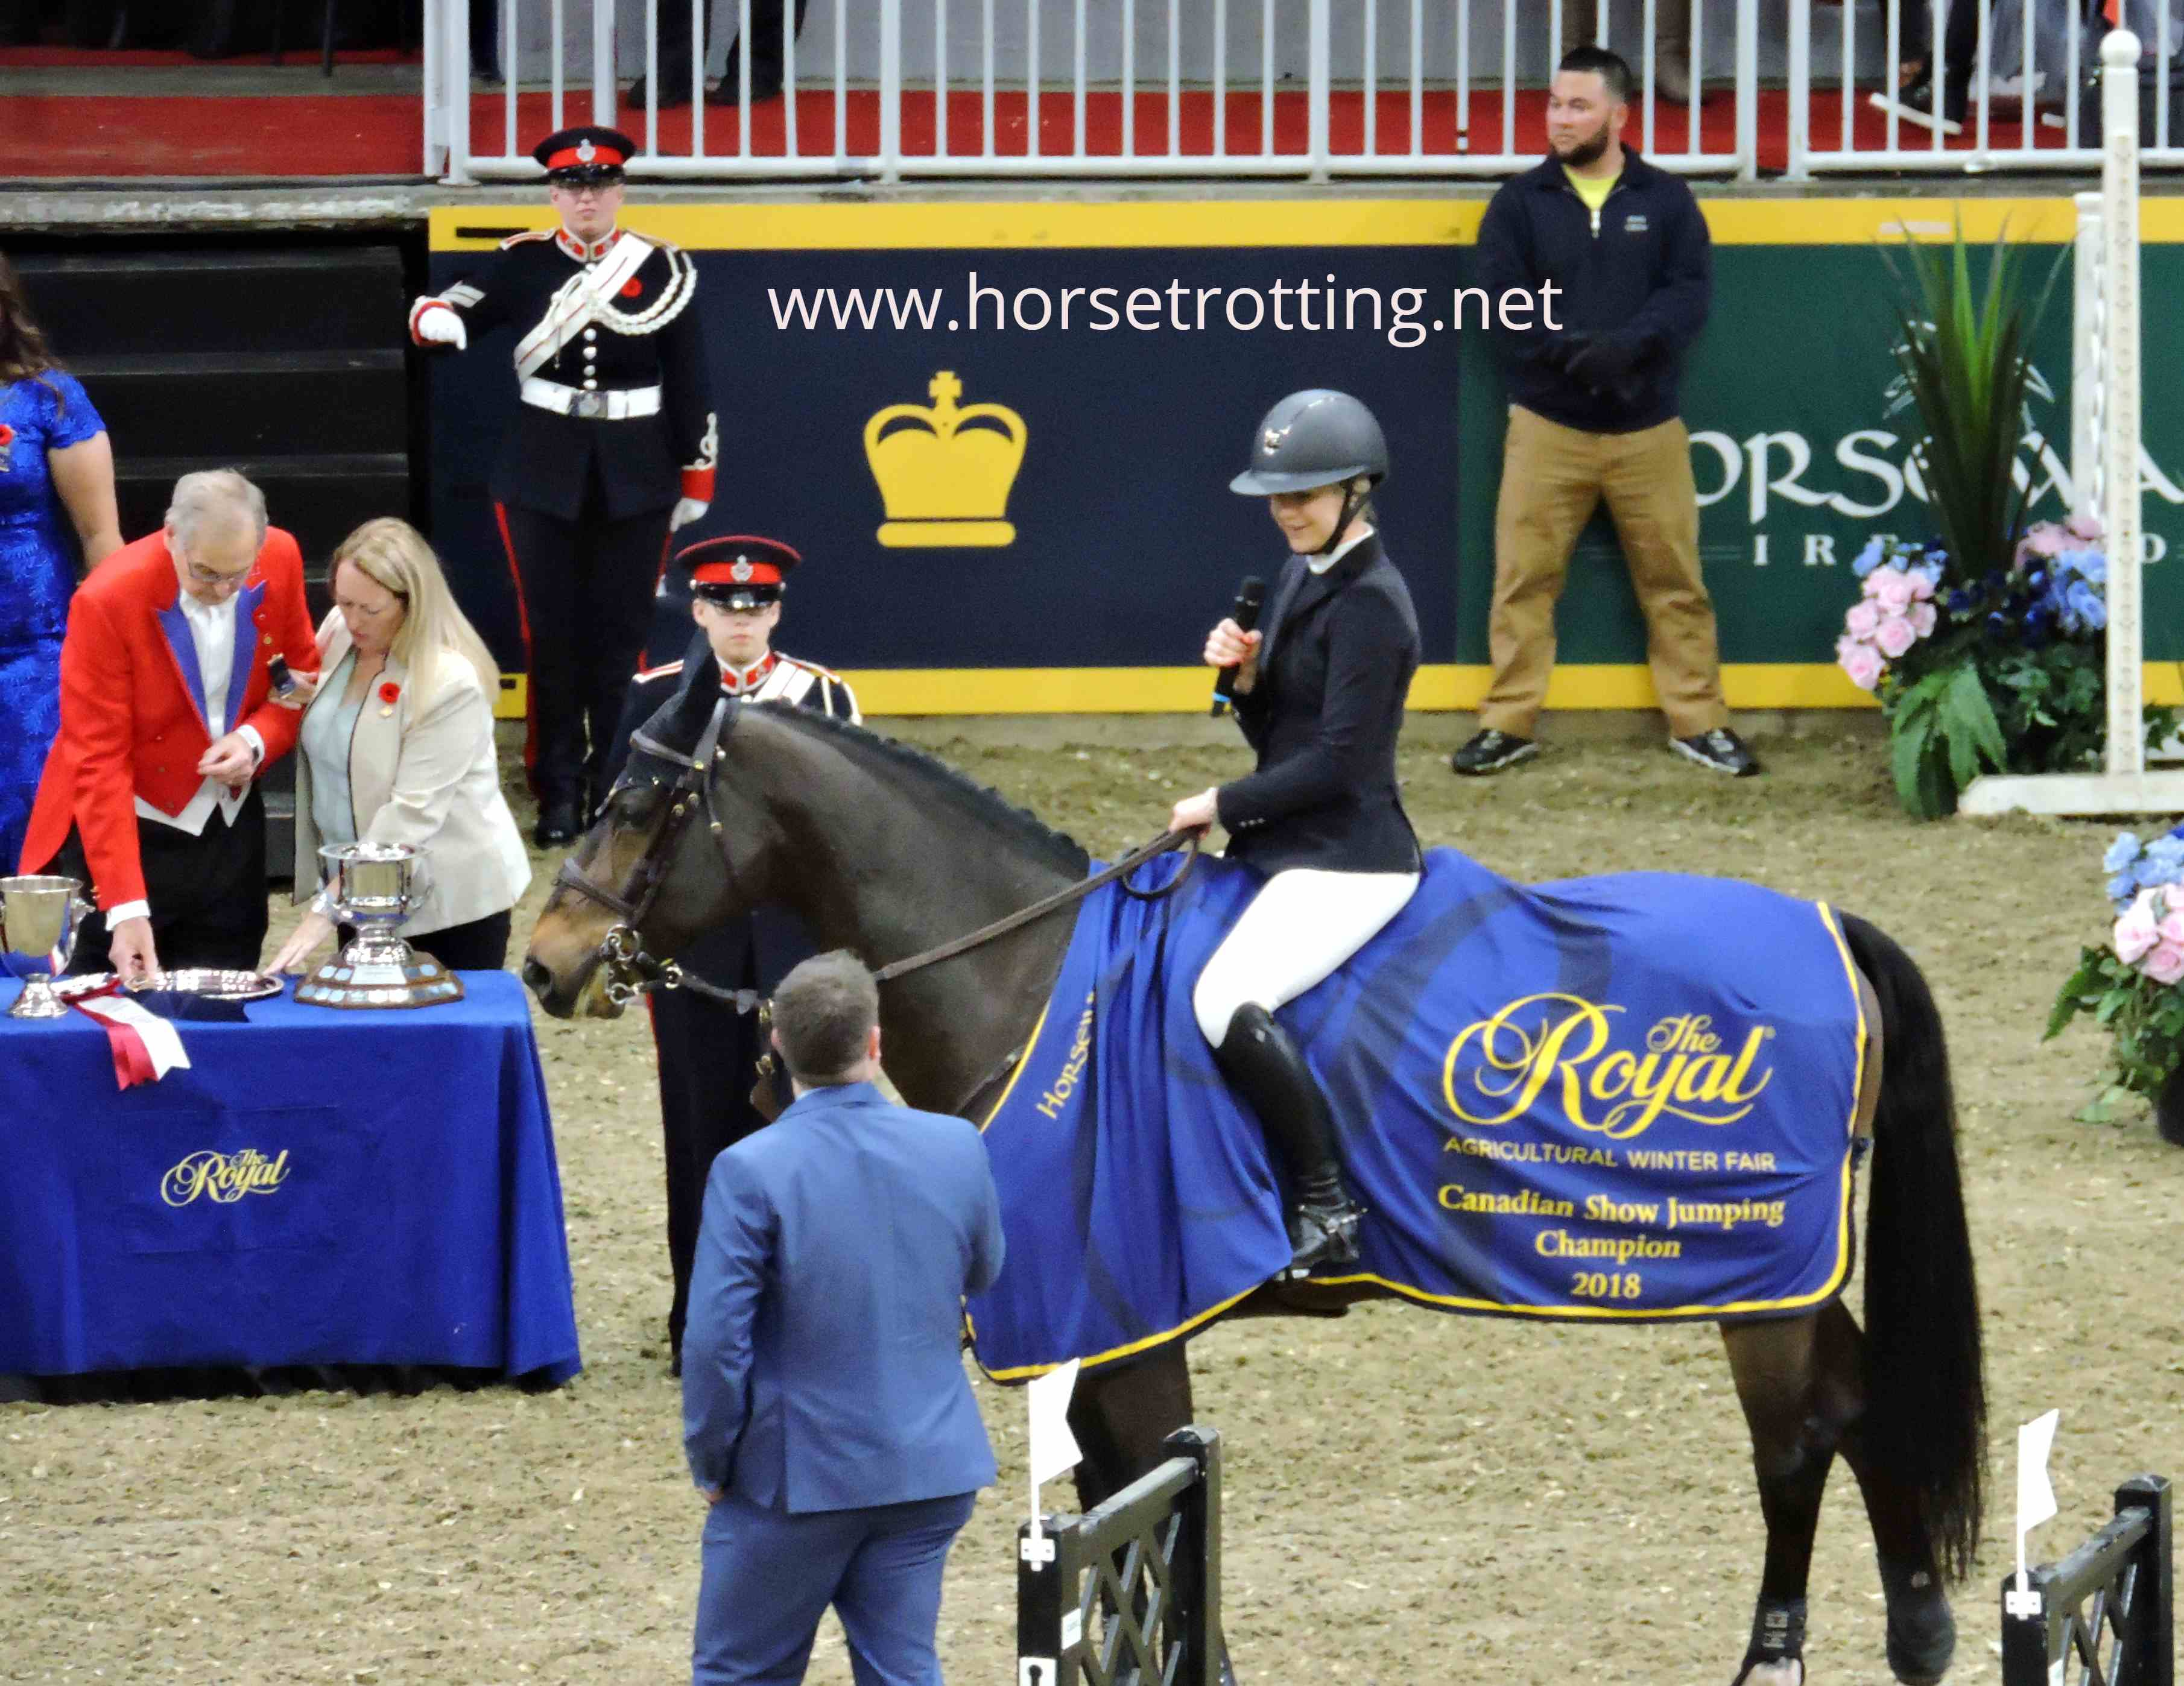 Royal Winter Fair Horse Show Part II: Canadian Show Jumping Finals